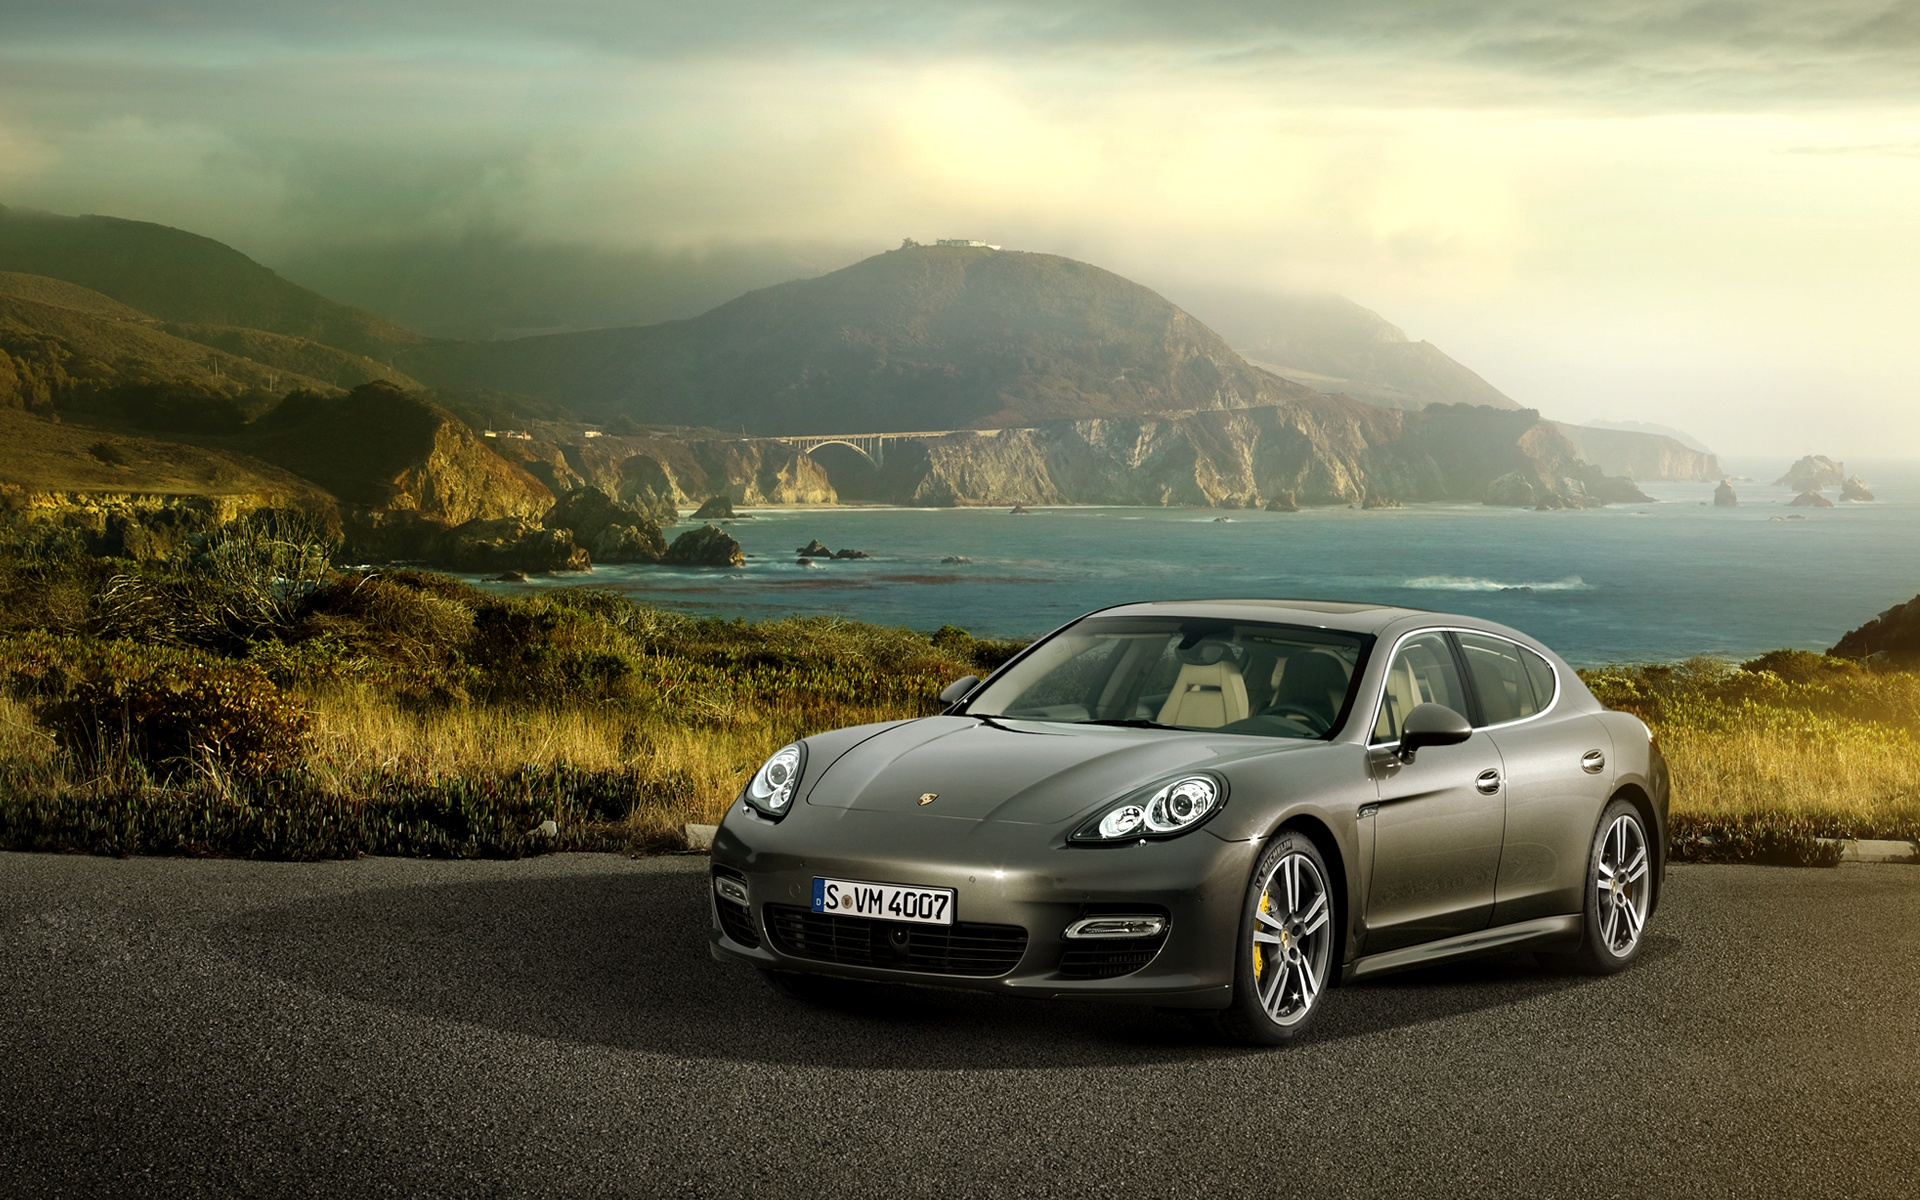 Download Porsche Panamera Dusky Hd Wallpaper